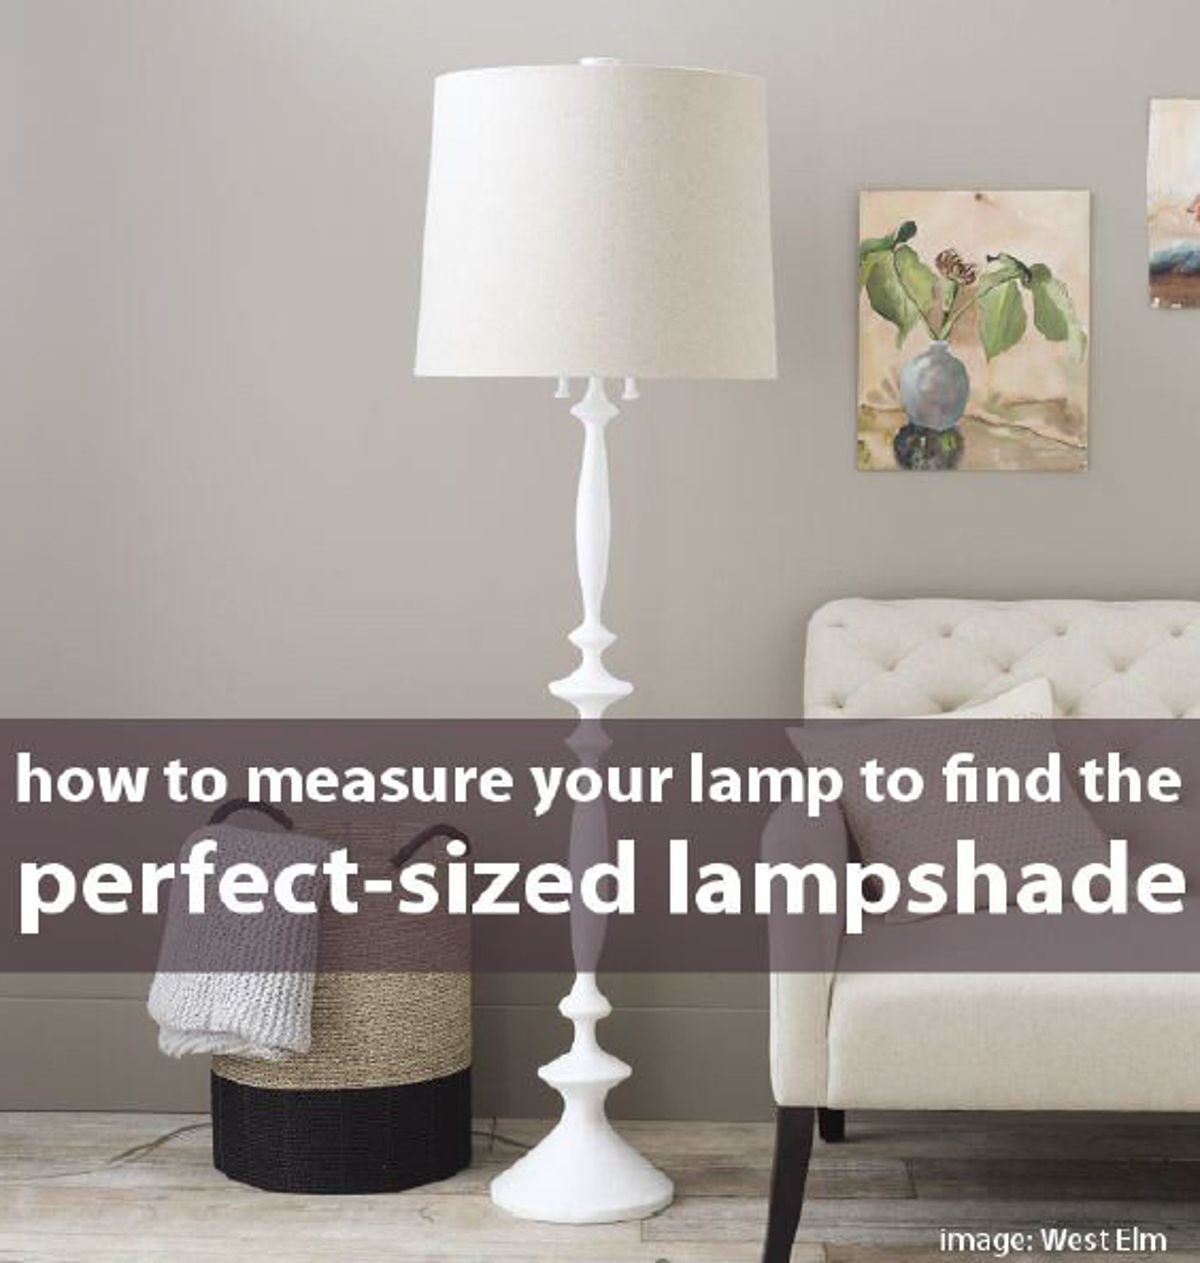 How To Measure Lamp Shade Enchanting Measure Your Lamp To Find The Right Sized Lampshade  Lamp Bases Inspiration Design